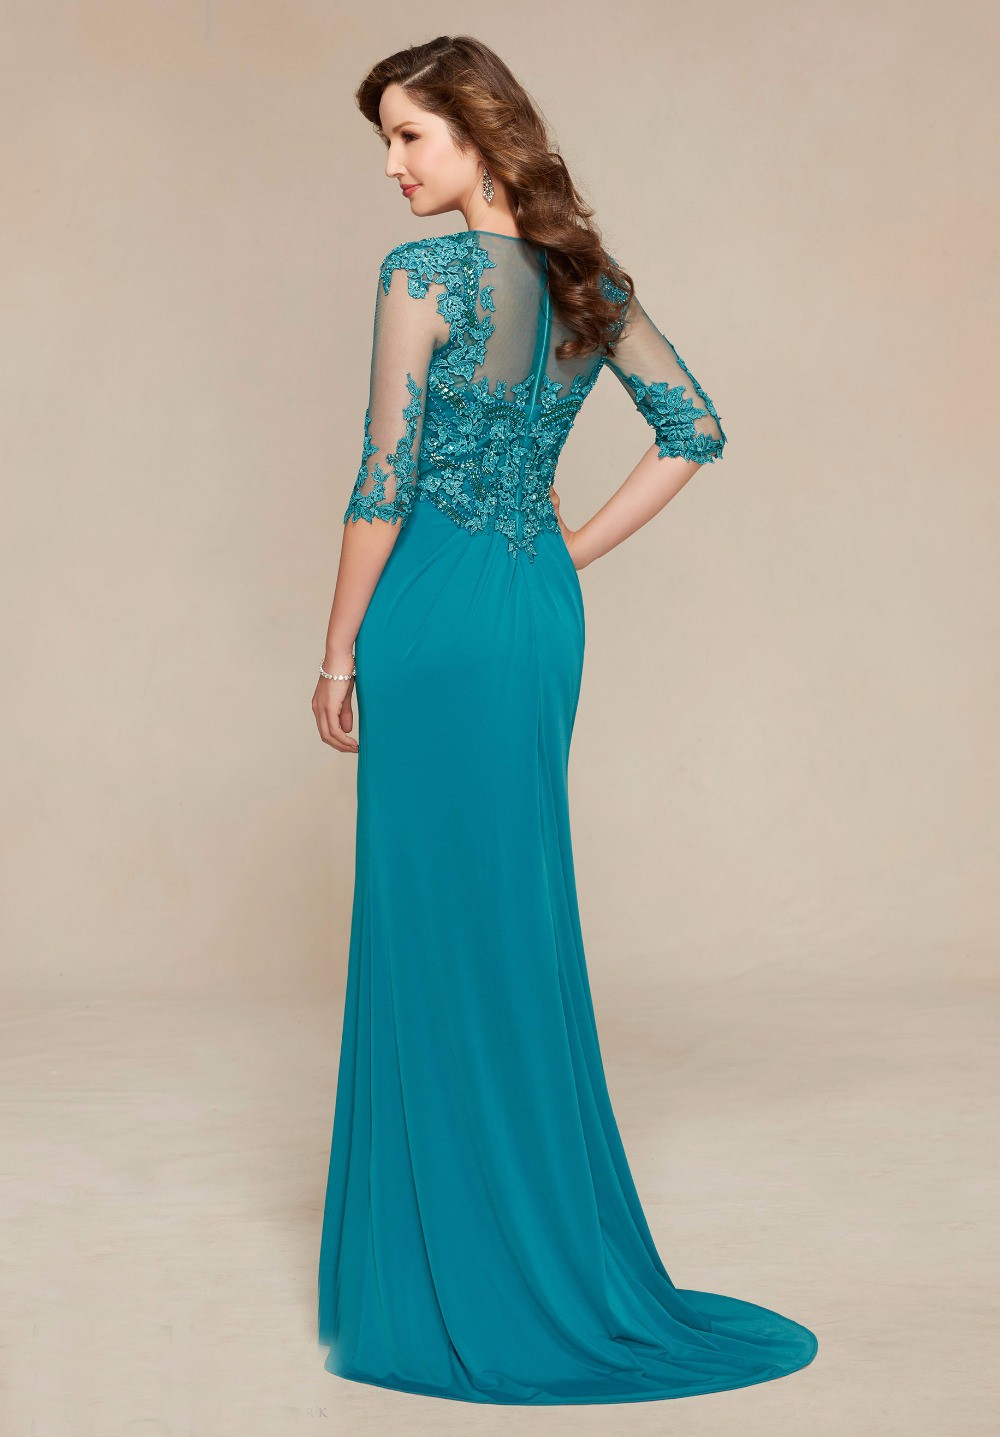 Custom-Made-Mother-Of-The-Bride-Dress-Gowns-Lace-Beading-Half-Sleeves-Godmother-Dresses-Trajes-de (1)